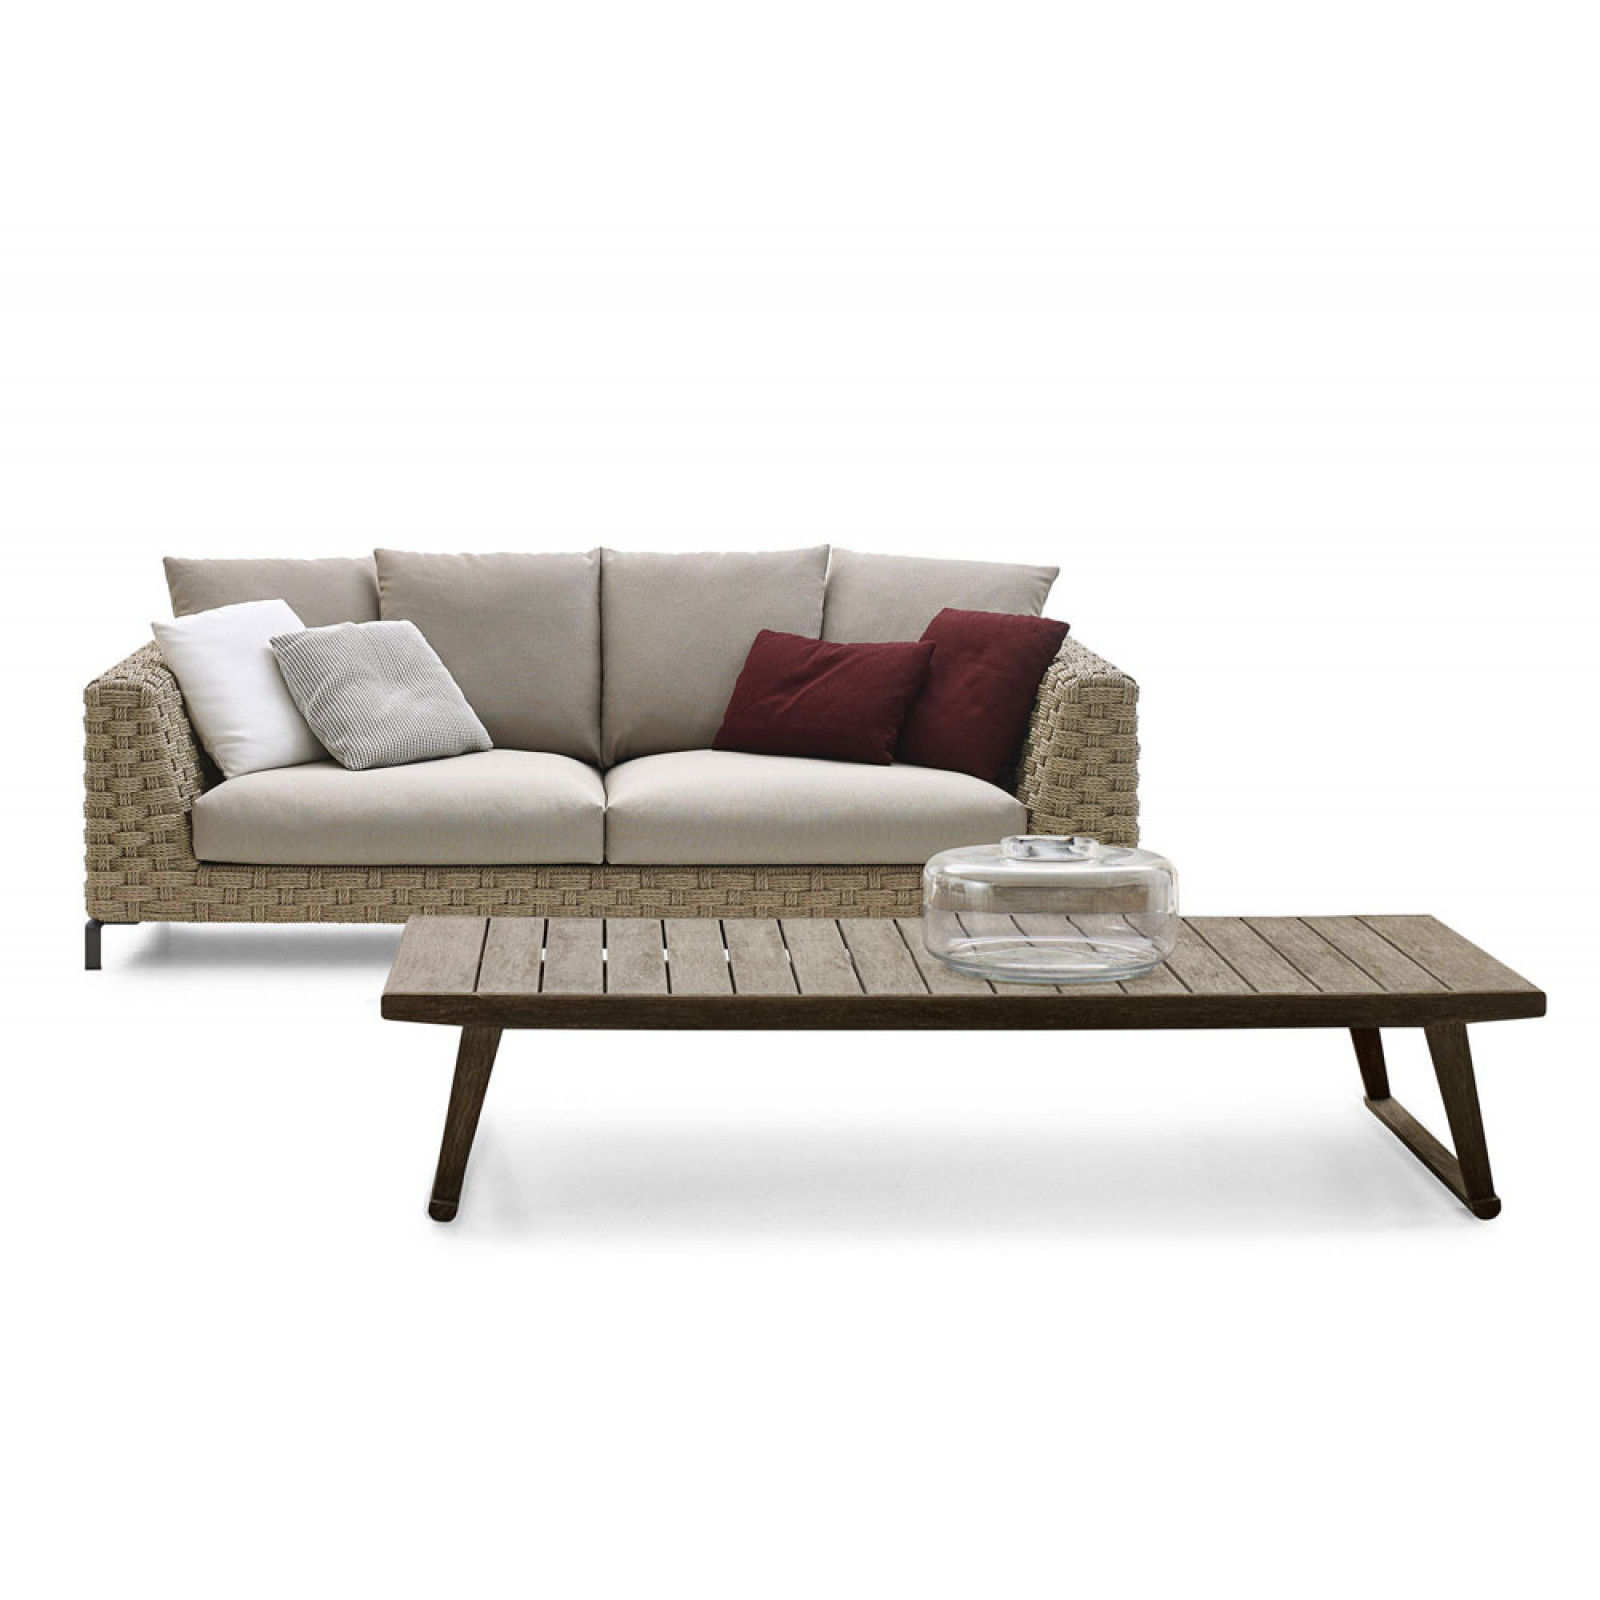 B&B Italia Ray Outdoor Loungesofa 235/6 cm Natural